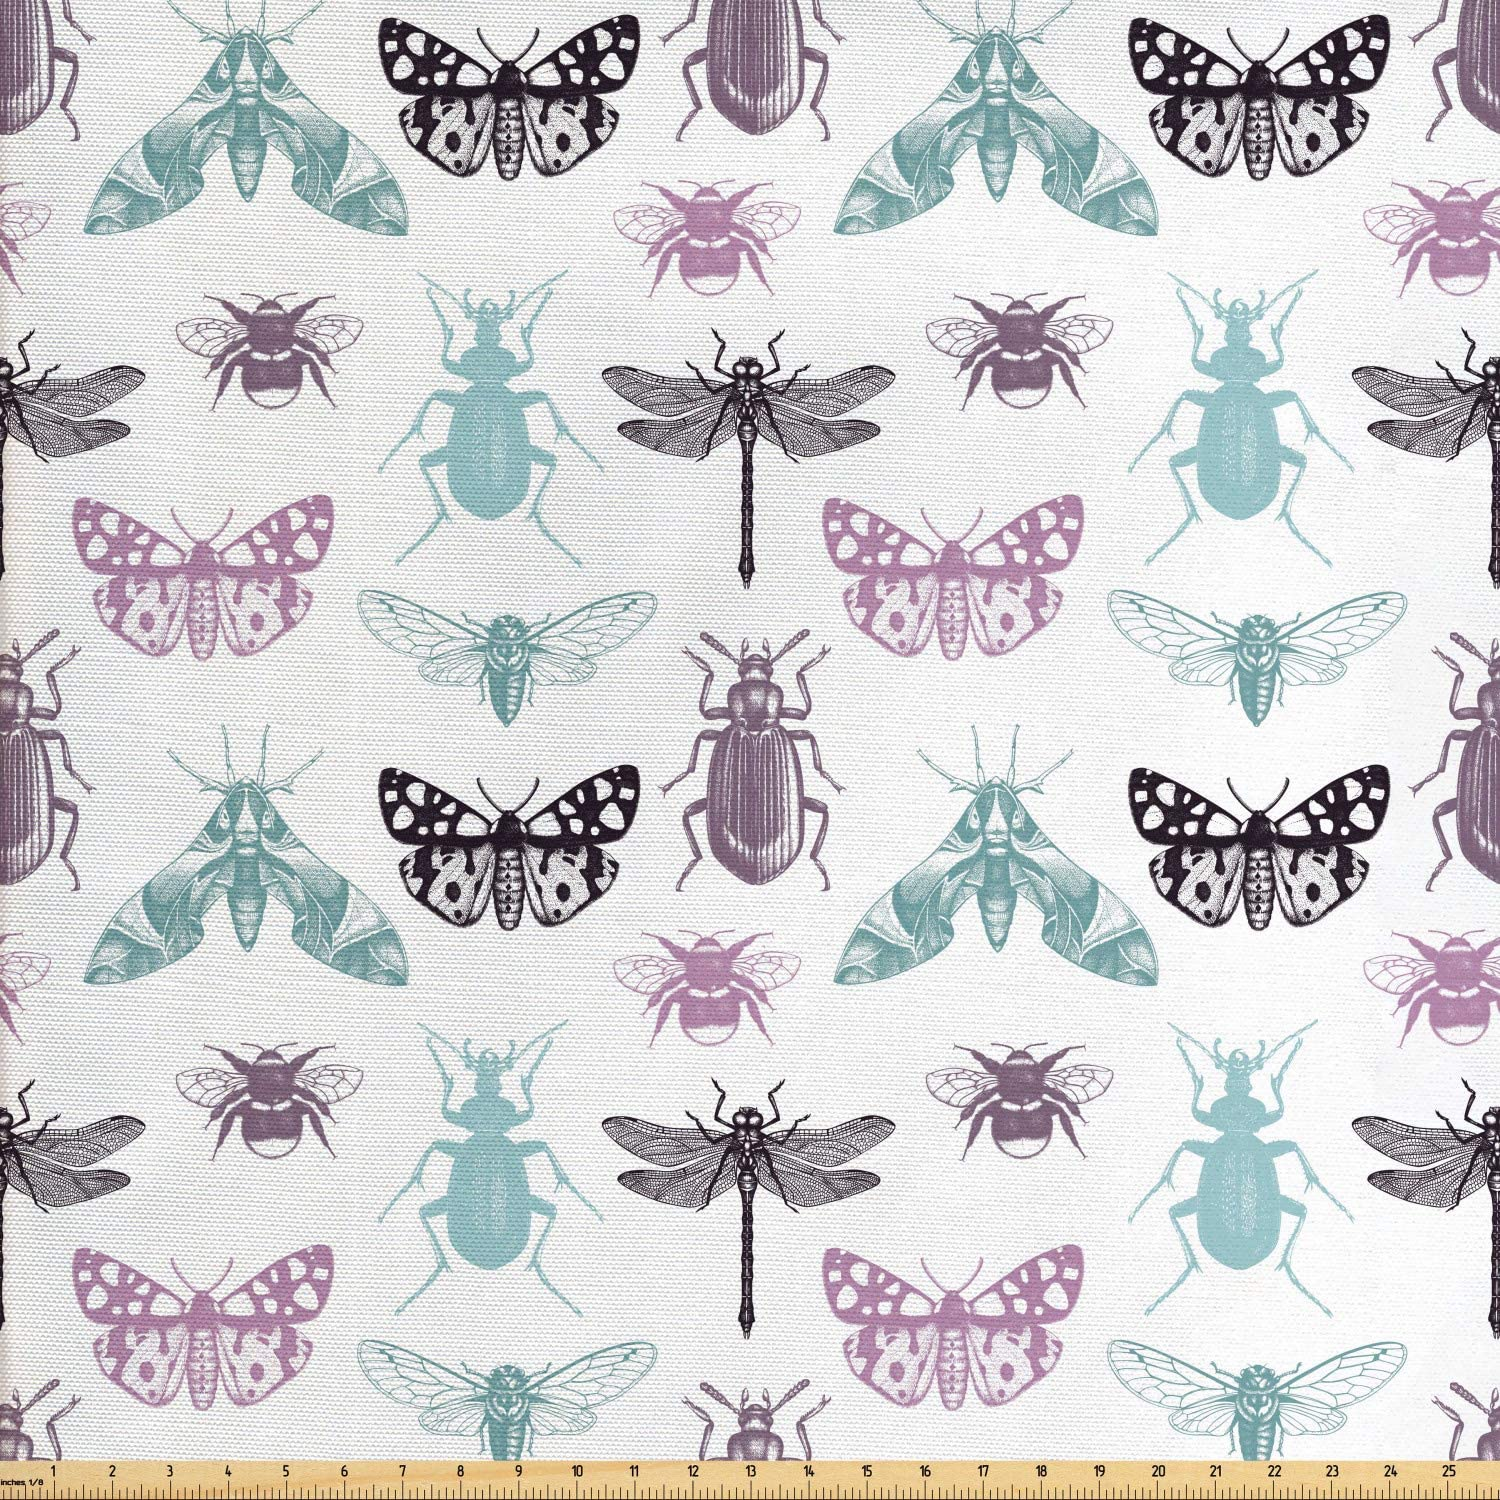 Ambesonne Dragonfly Fabric by The Yard, Vintage Hand Drawn Sketch of Insects Cold Toned Colorful Pattern Art, Decorative Fabric for Upholstery and Home Accents, 1 Yard, White and Multicolor